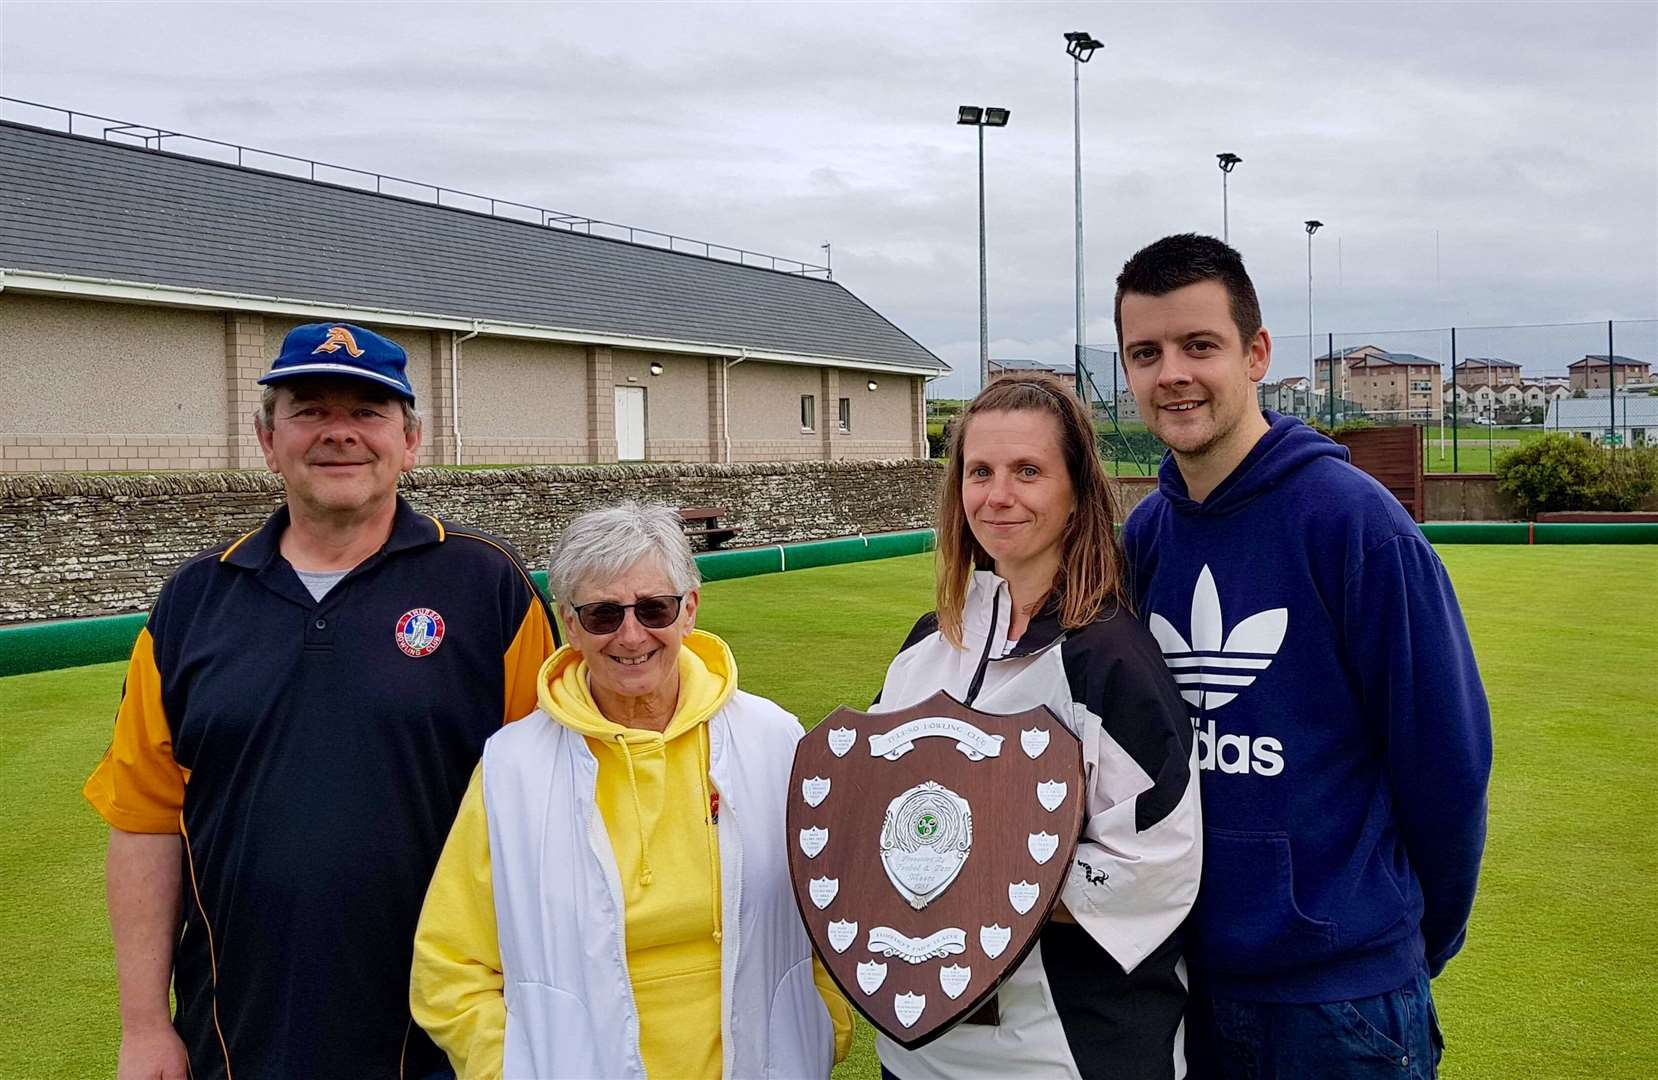 From left: Pairs league runners-up Allan Hourston and Liz Rhodes with winners Marina Bain and Alan Morrison.